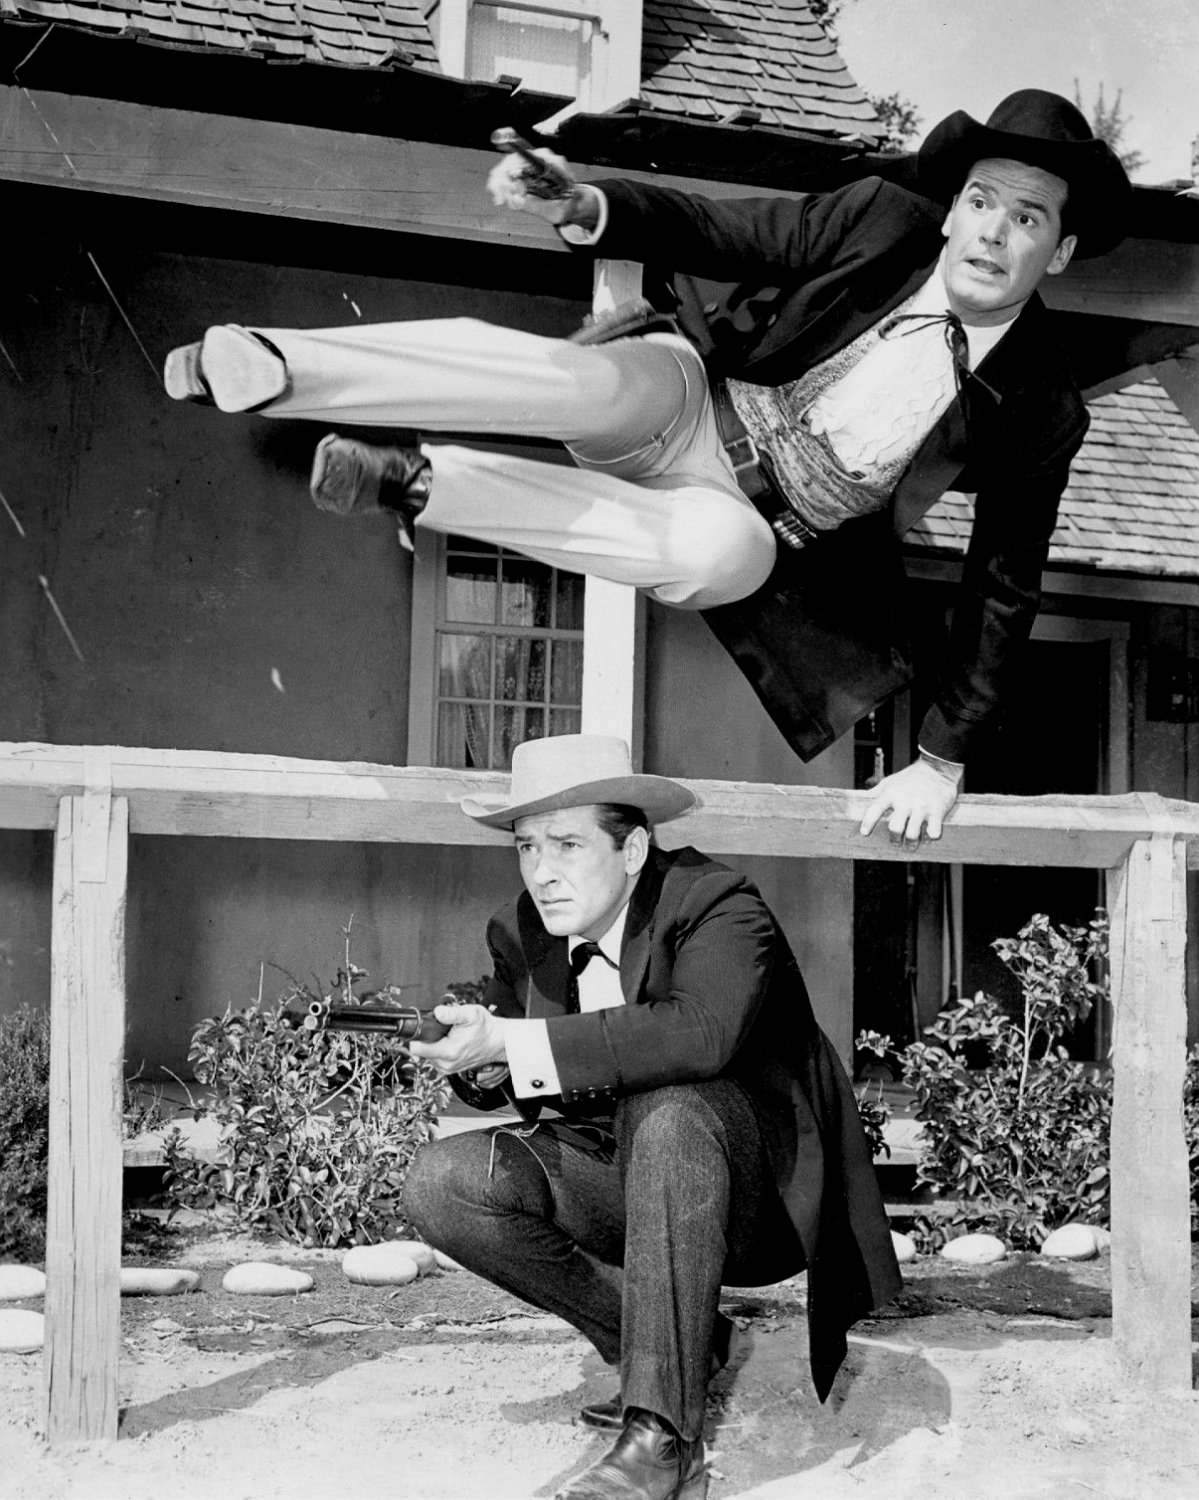 JAMES GARNER & JACK KELLY IN TV SERIES 'MAVERICK' 8X10 PUBLICITY PHOTO (AZ-019)